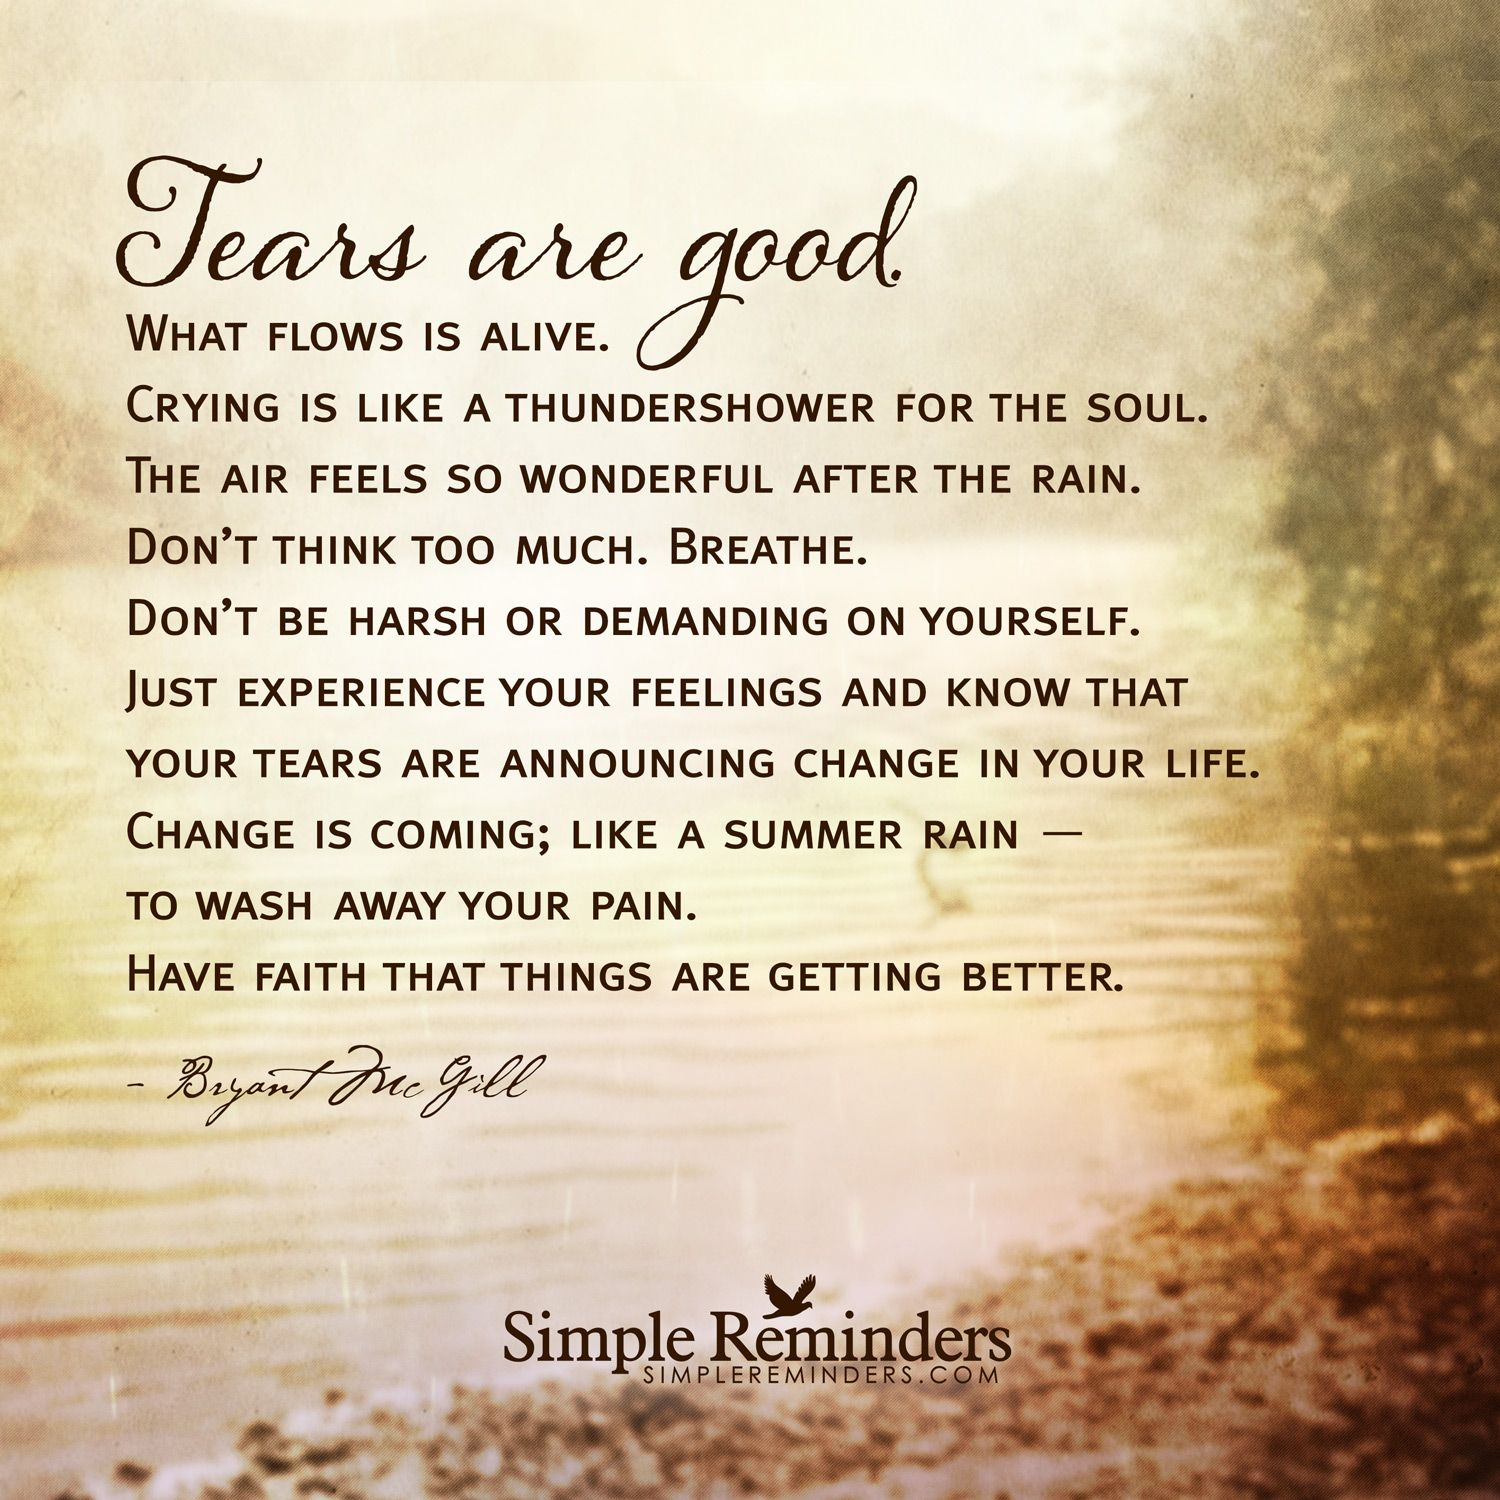 Your tears are announcing change in your life